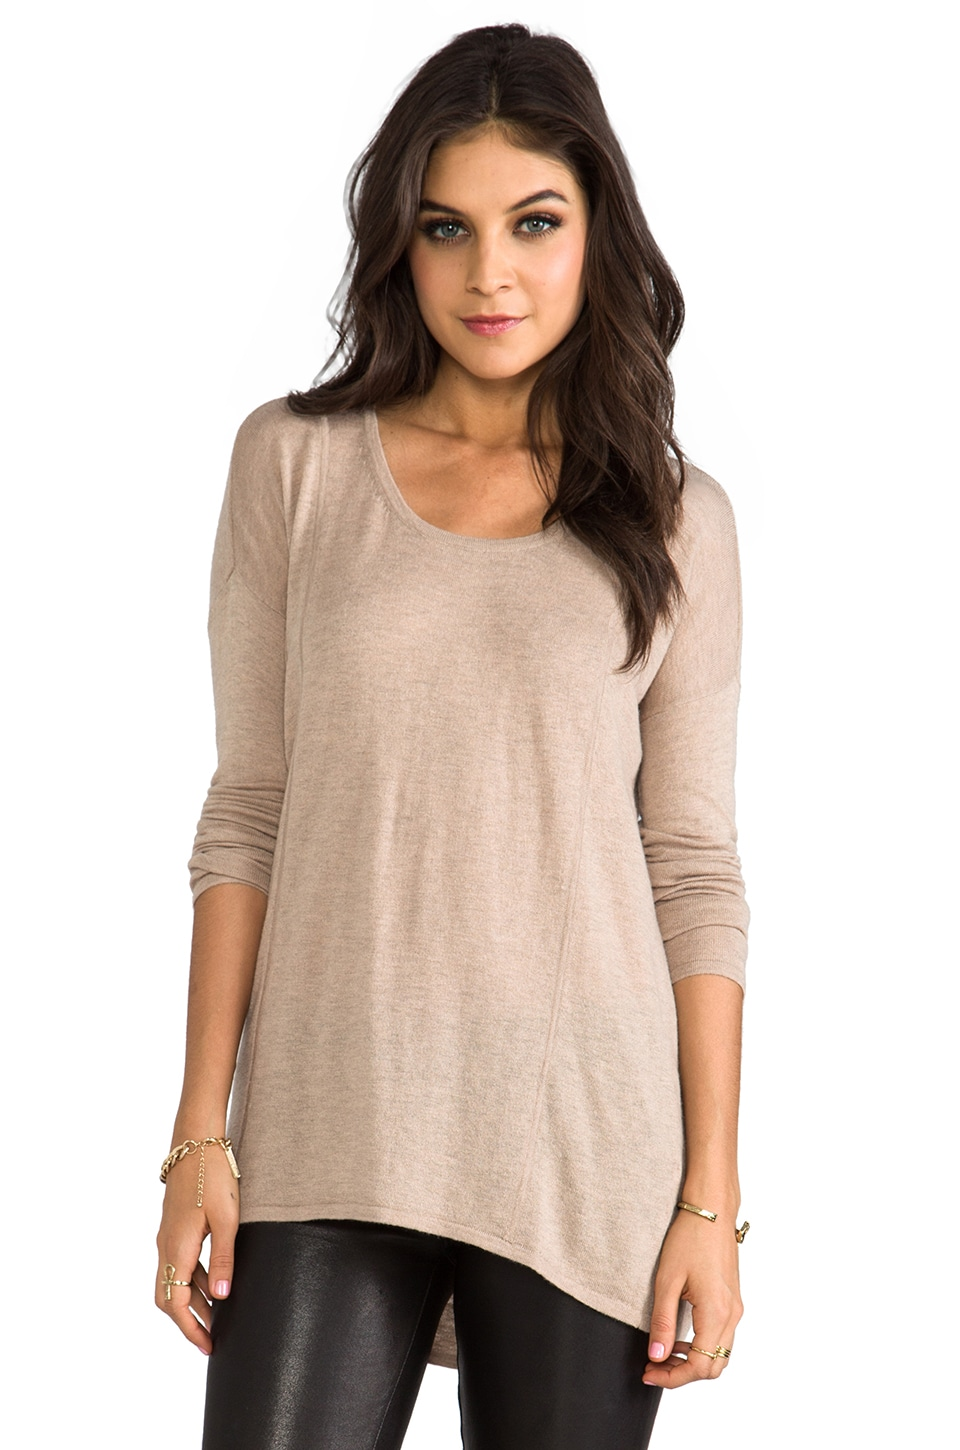 C&C California Long Sleeve Hi-Low Cashmere Blend Sweater in Oatmeal